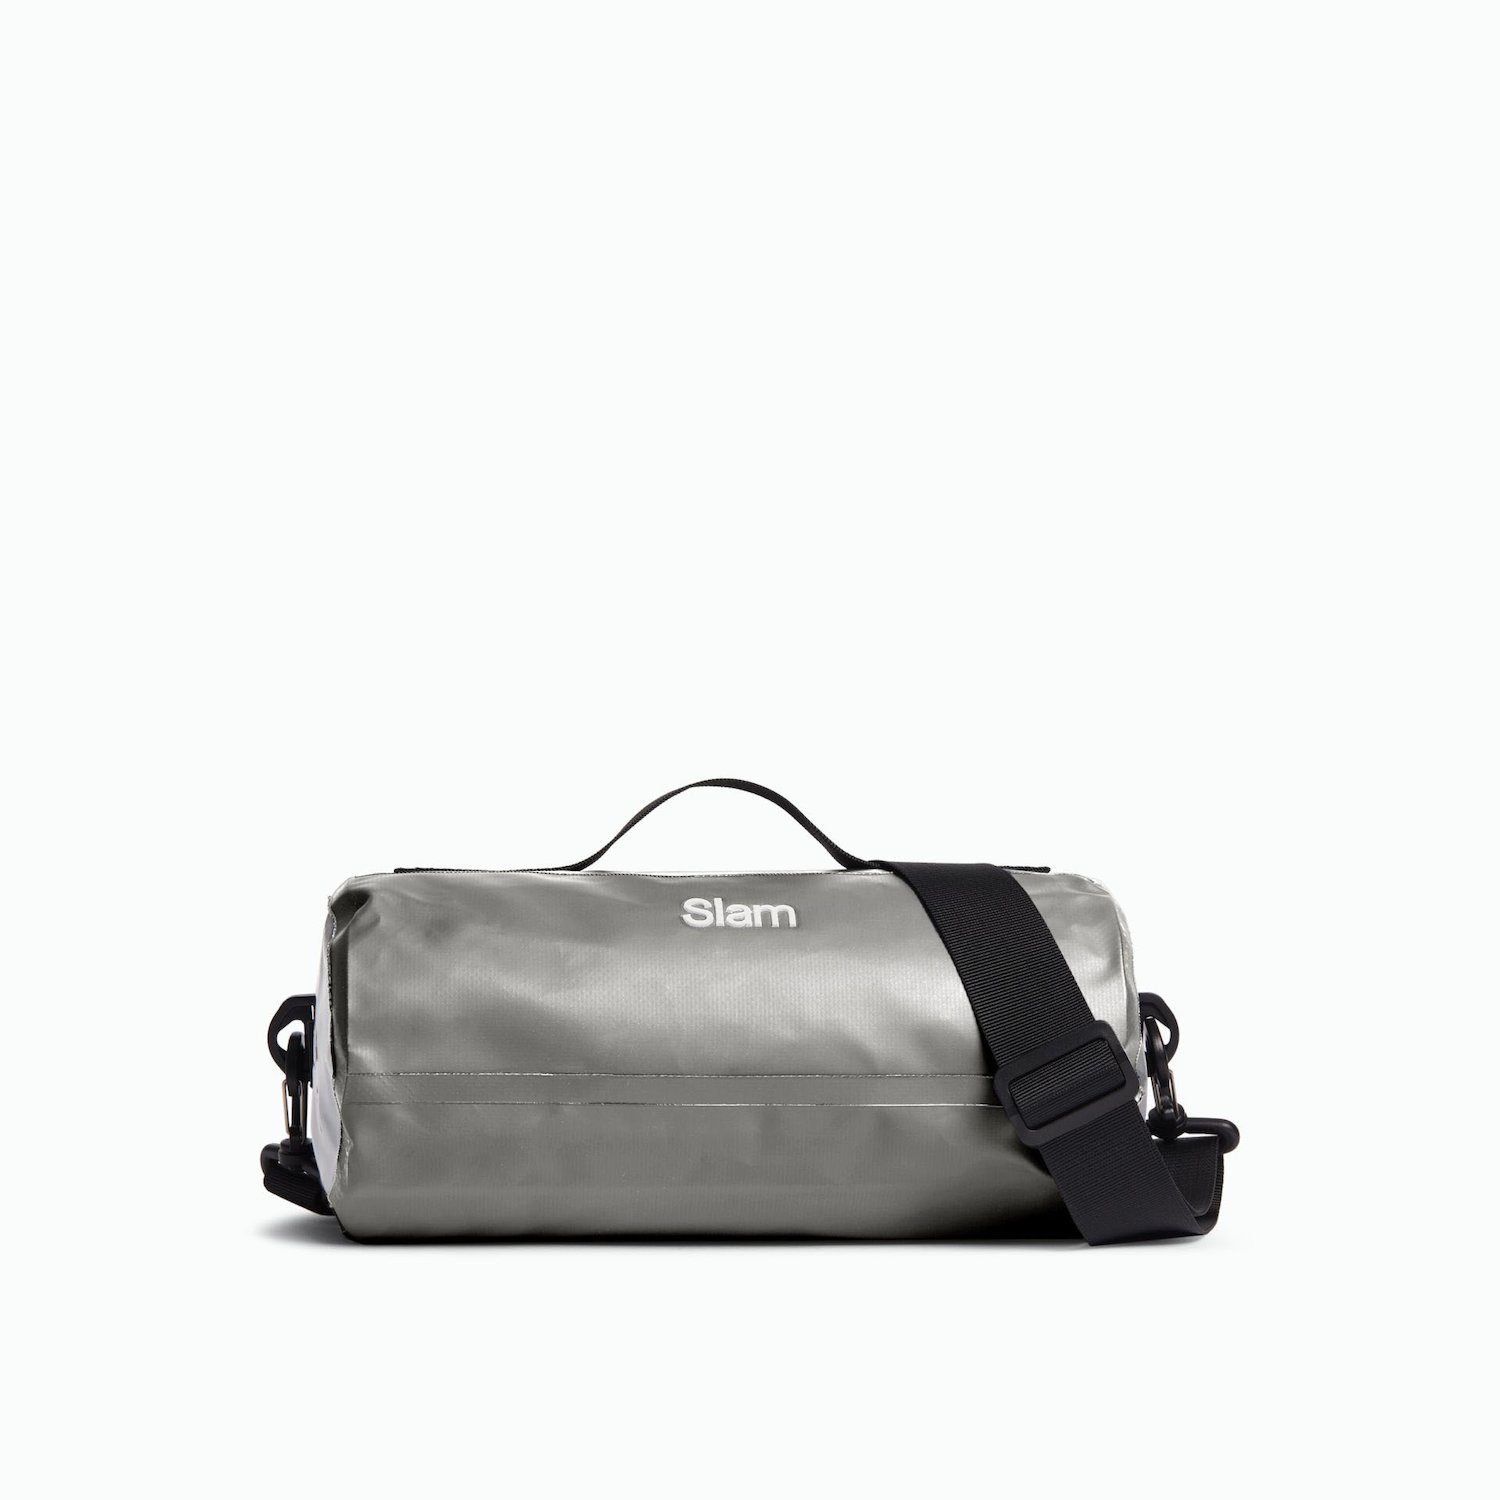 WR 1 Evolution Bag - Plata